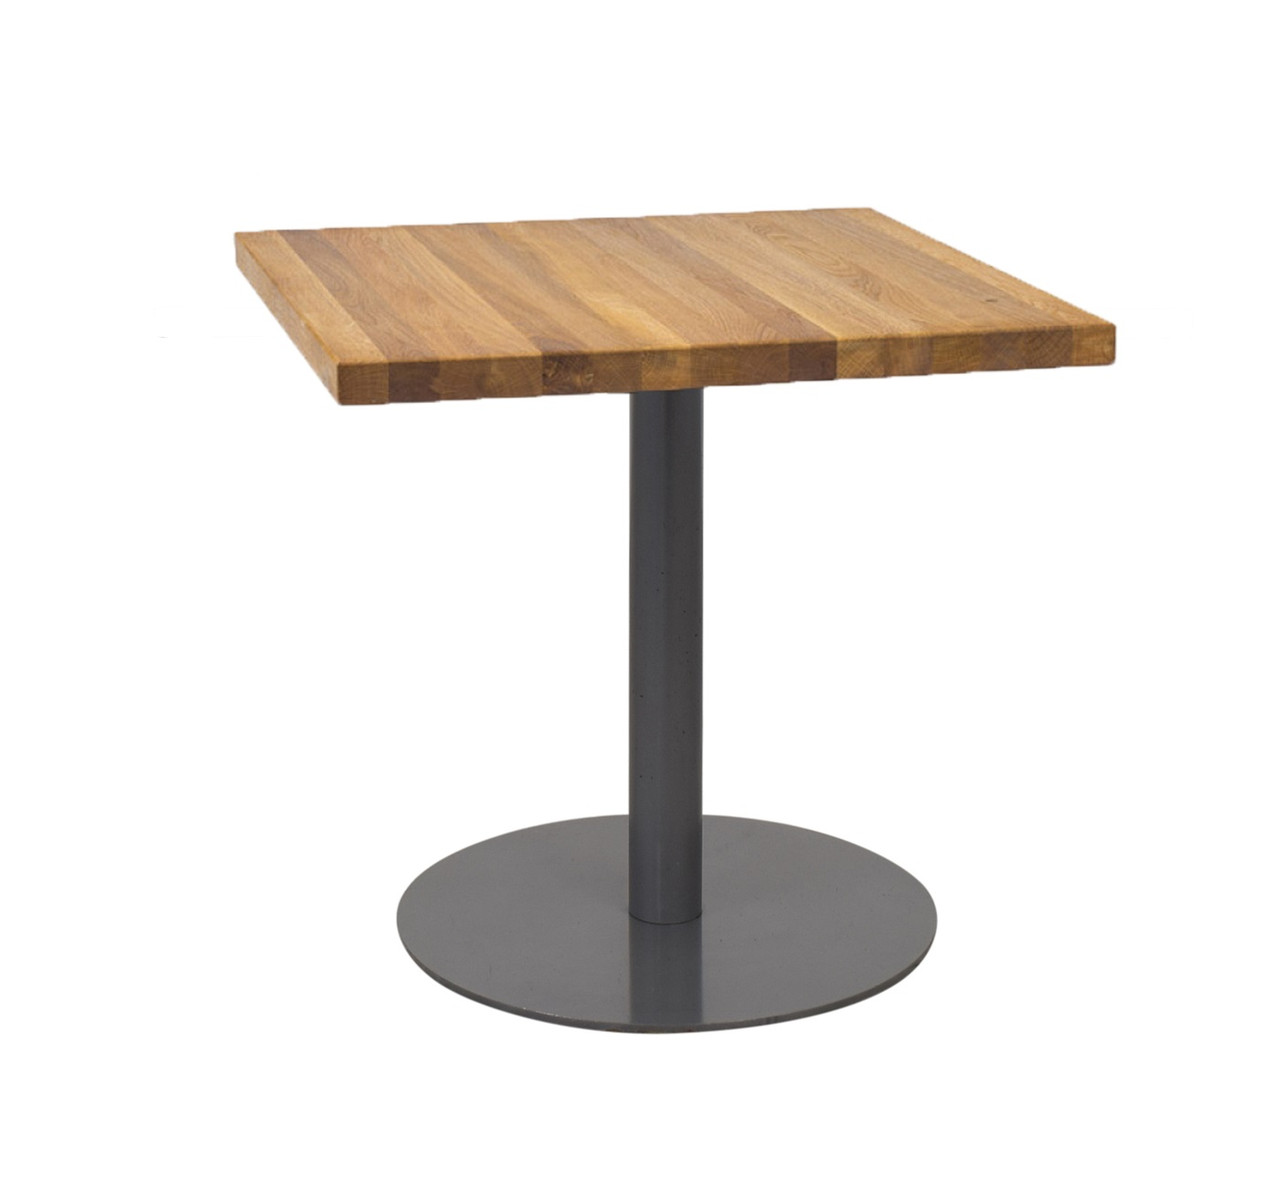 tracey_inc_square_pedestal_table2121.jpg